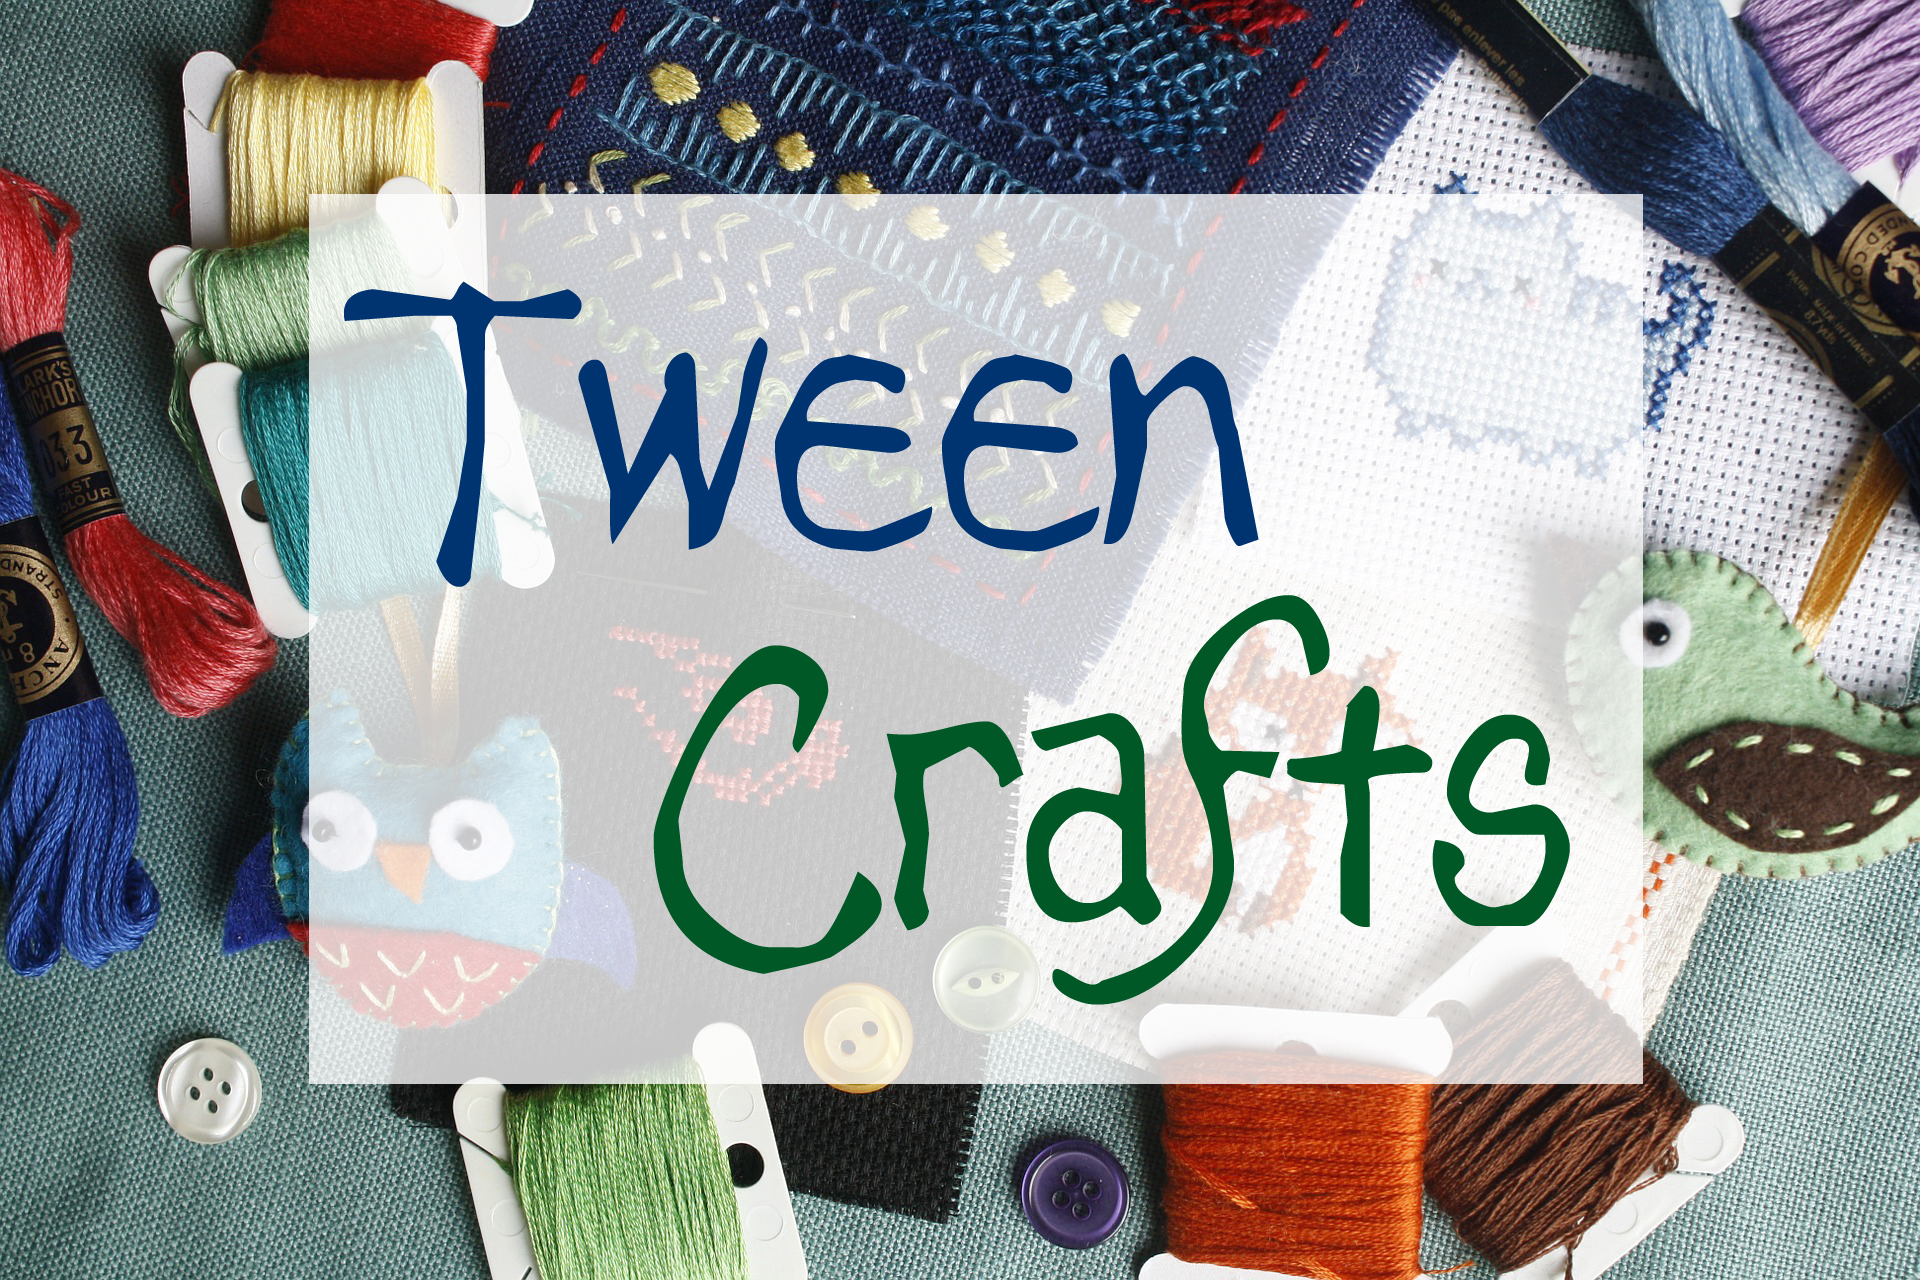 Tween Crafts